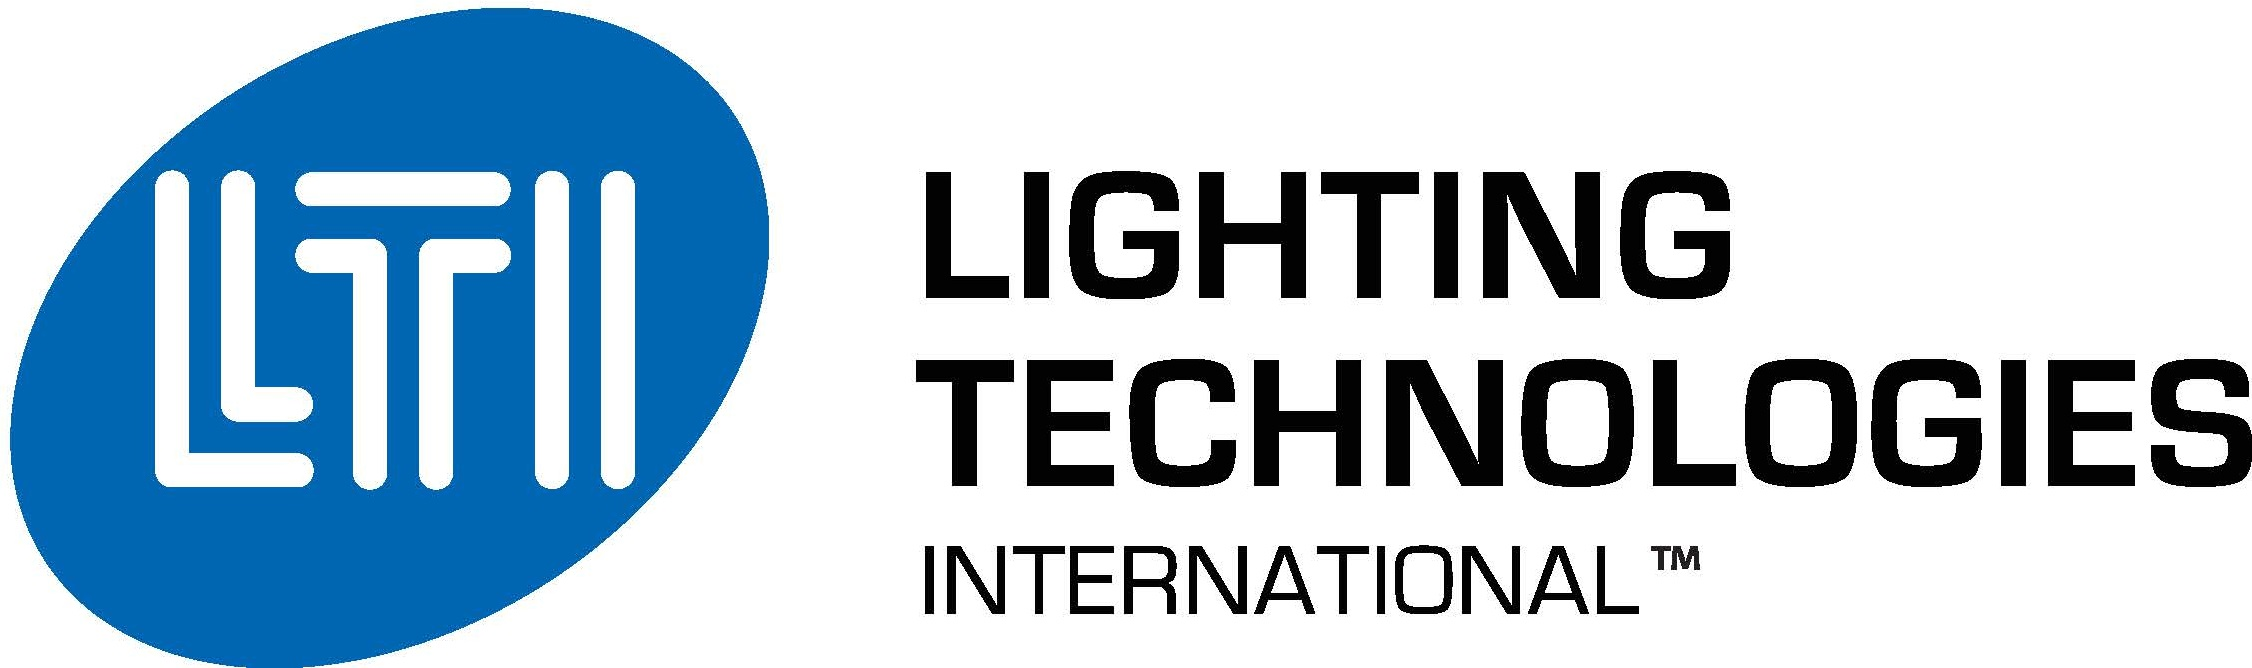 Lighting Technologies Int'l (LTI)